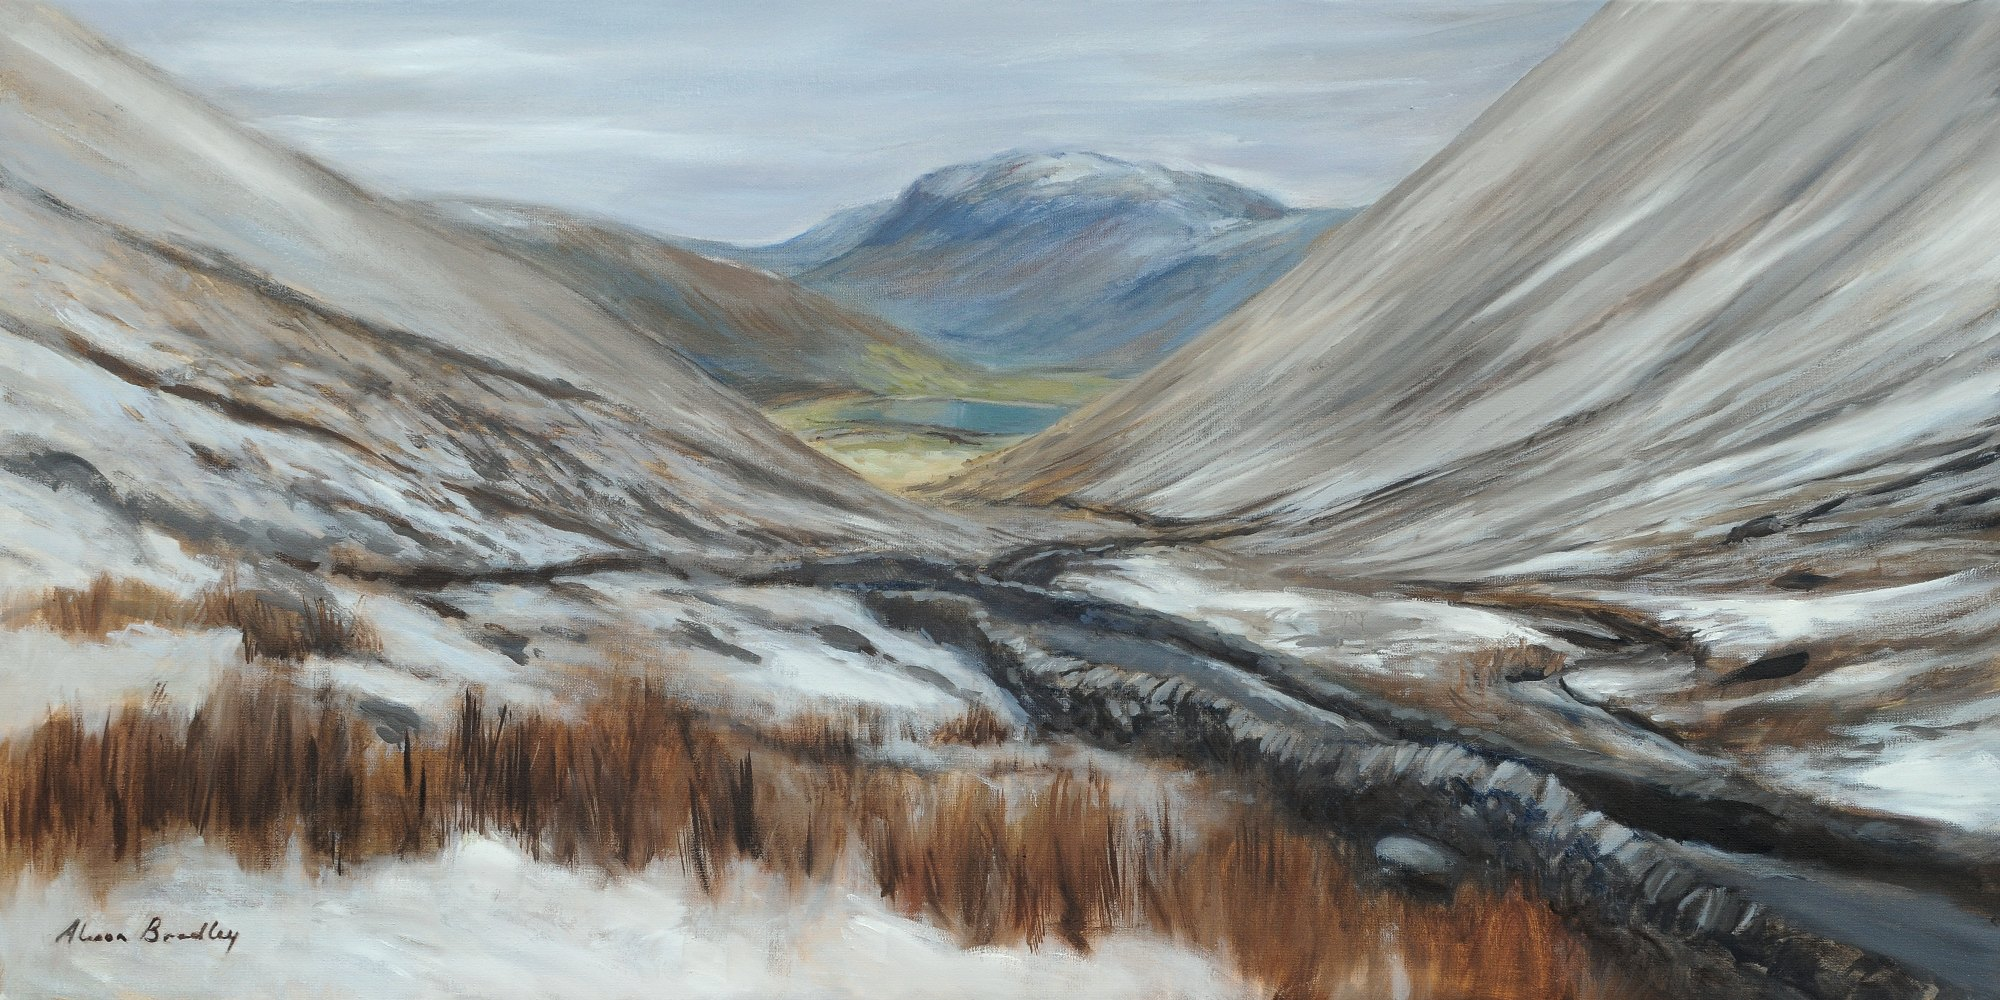 kirkstone-pass-in-winter-cumbria.jpg